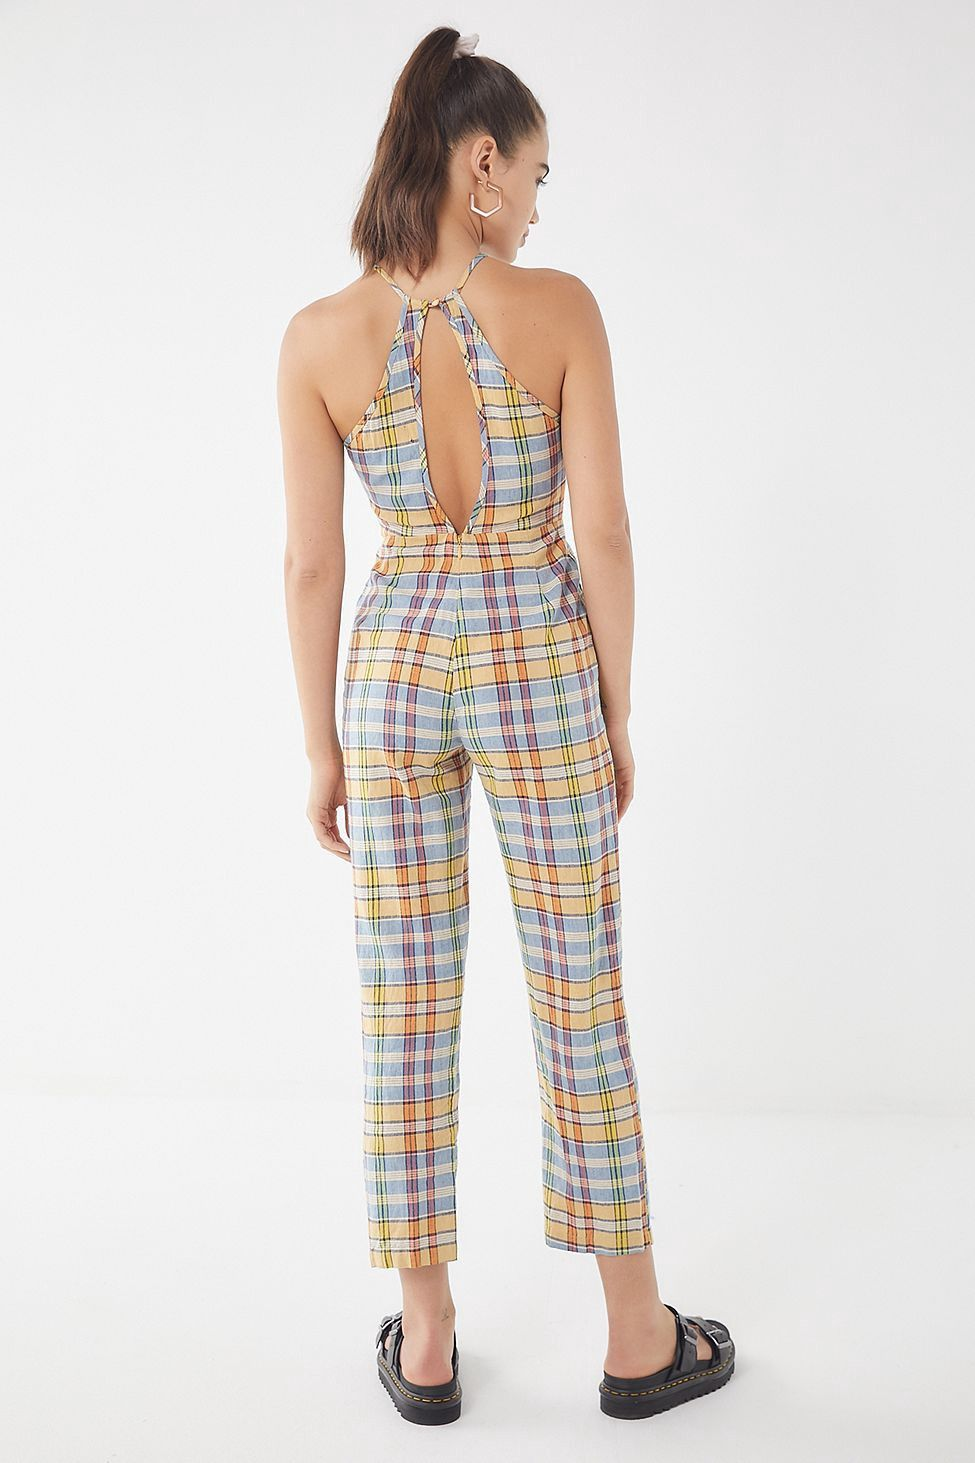 dfce91847cb Urban Outfitters Uo Hattie High-Neck Linen Jumpsuit - Yellow Multi 2 Navy